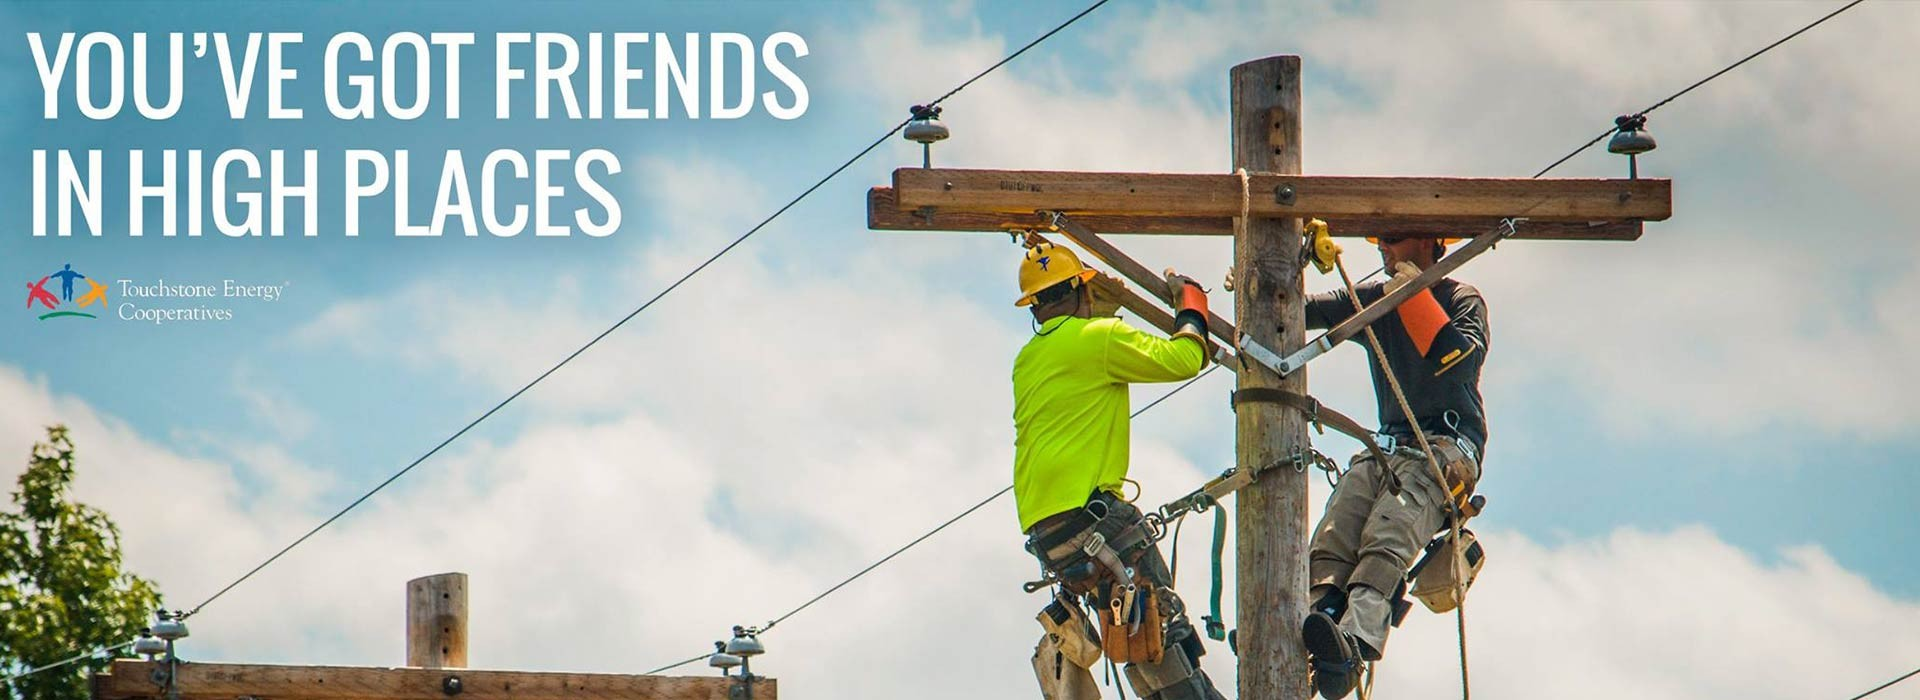 You've Got Friends in High Places - Touchstone Energy Cooperatives (Men working on power lines)